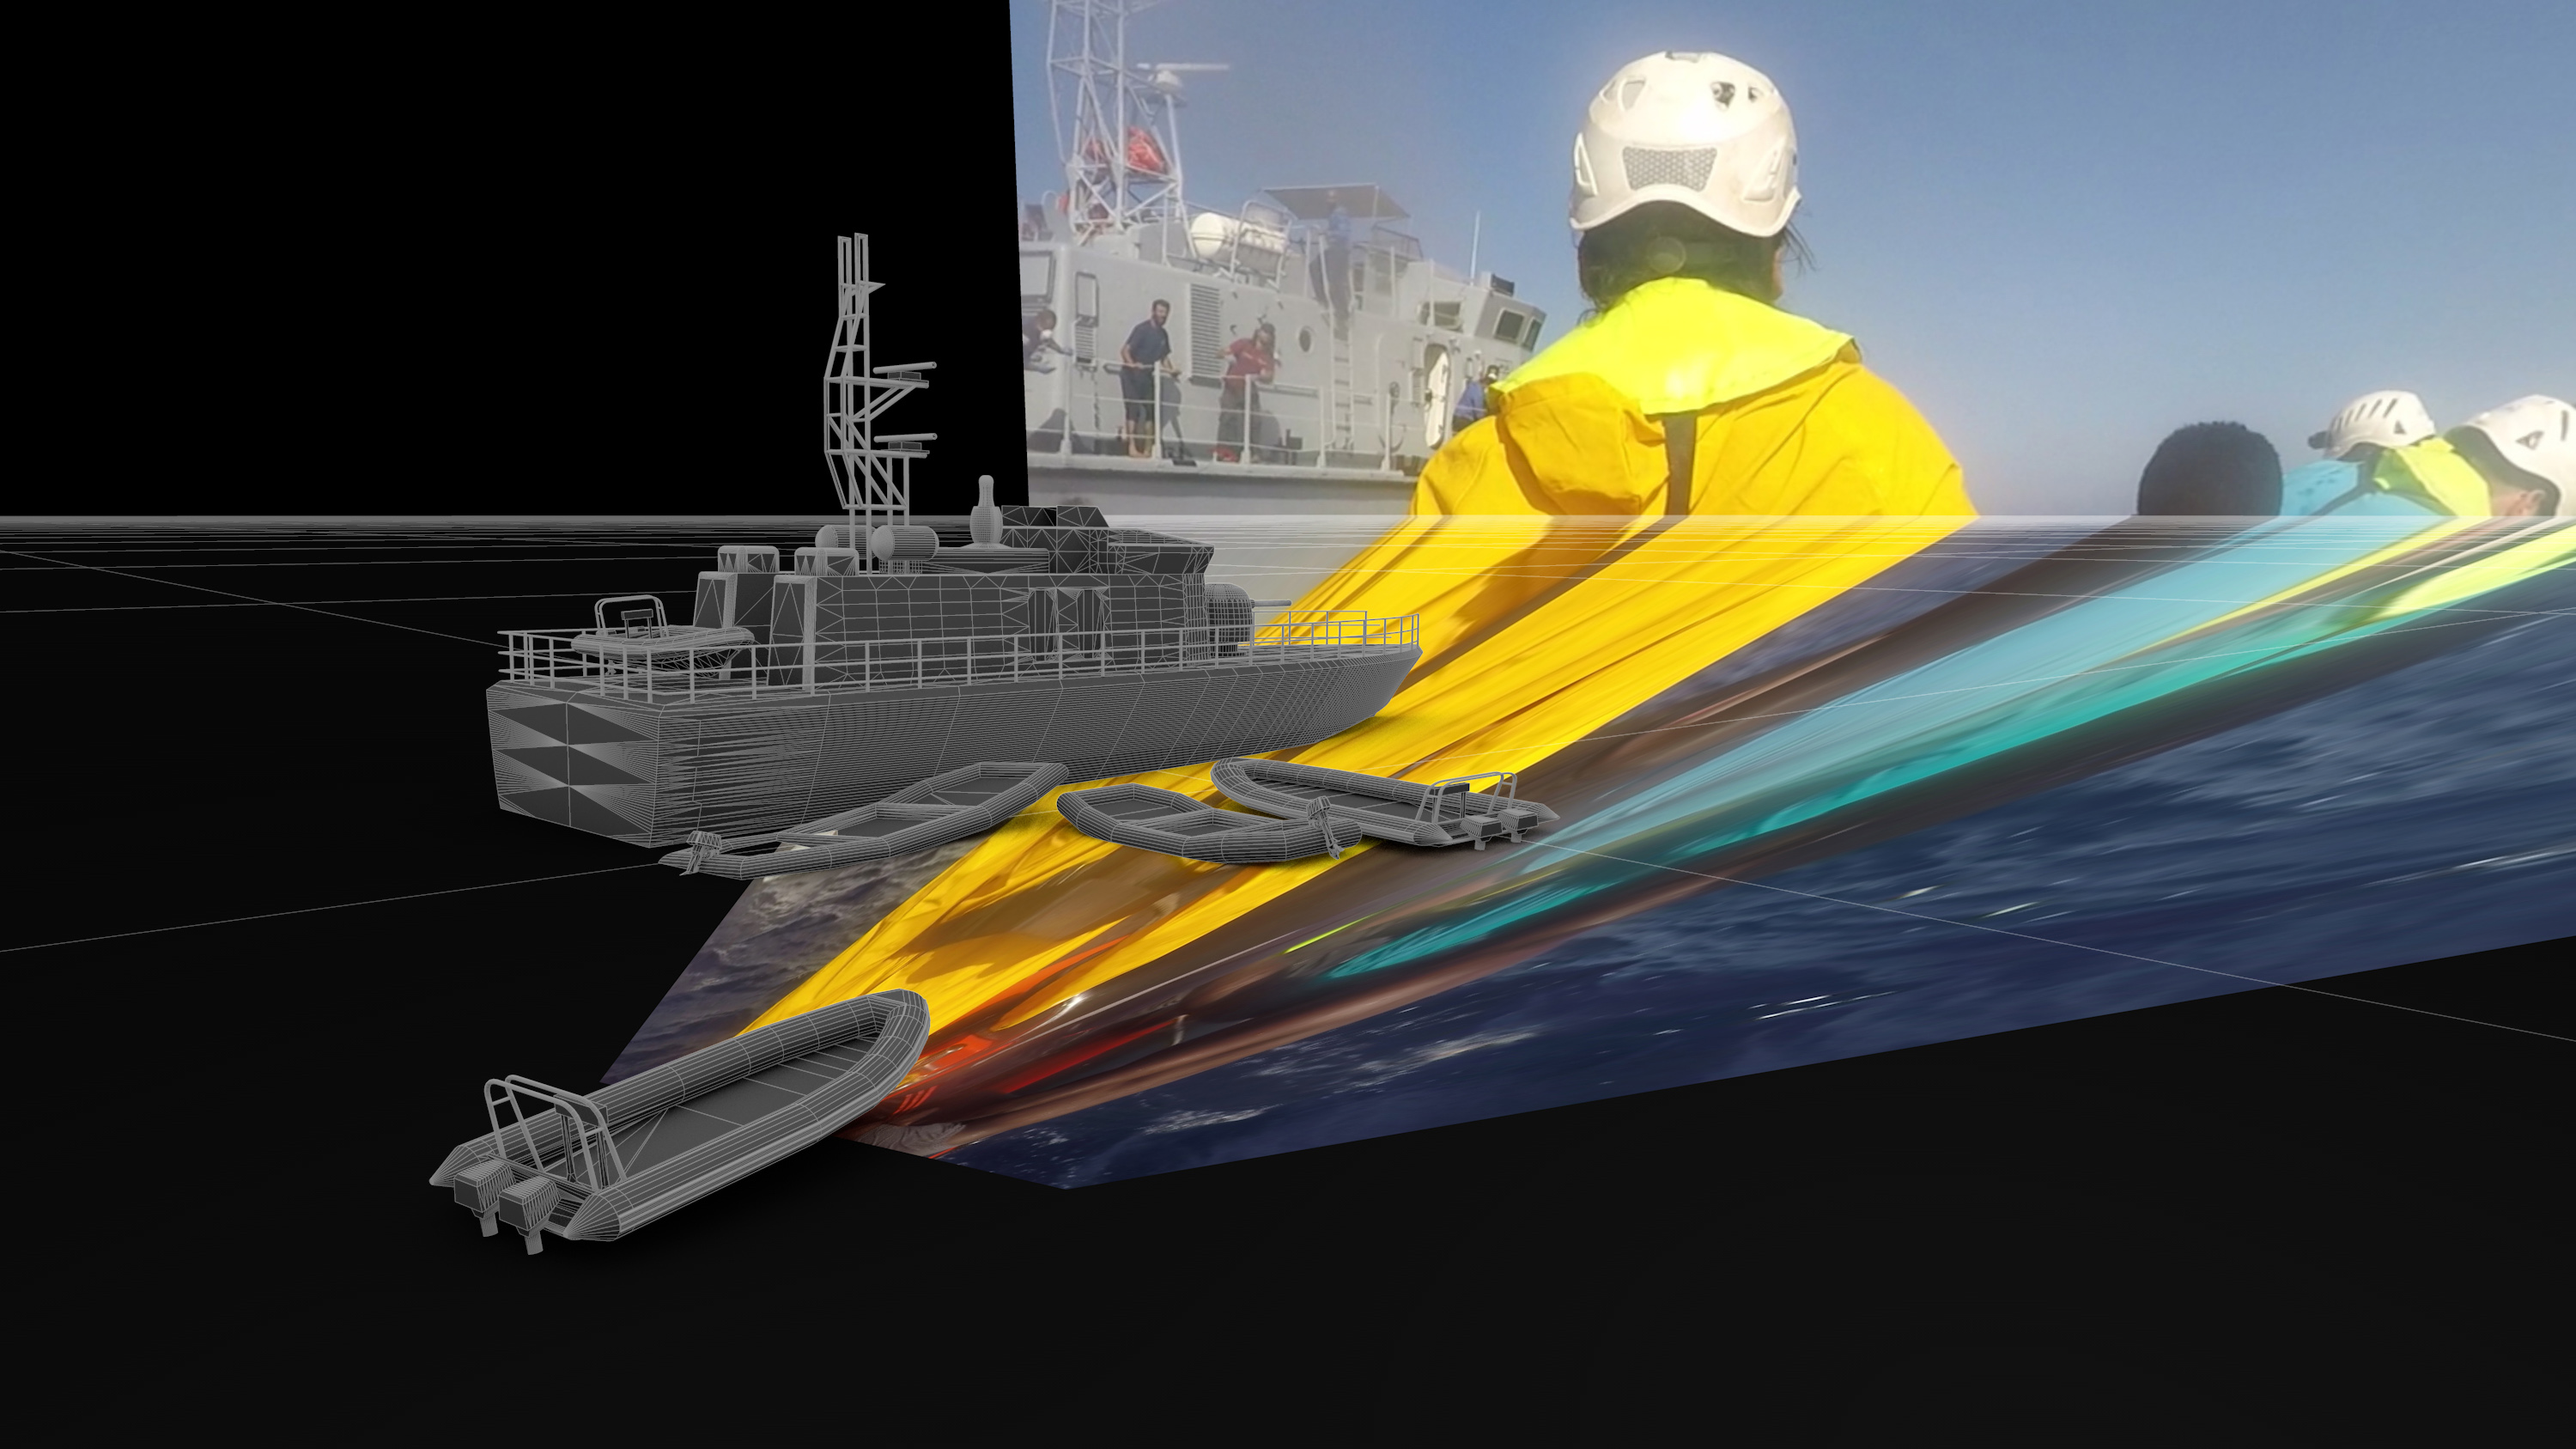 Forensic Oceanography and Forensic Architecture, Film Still 2, 28 min, © Mare Clausum – The Sea Watch vs Libyan Coast Guard Case, 2018, 28 min, Image: Forensic Oceanography and Forensic Architecture, 2018